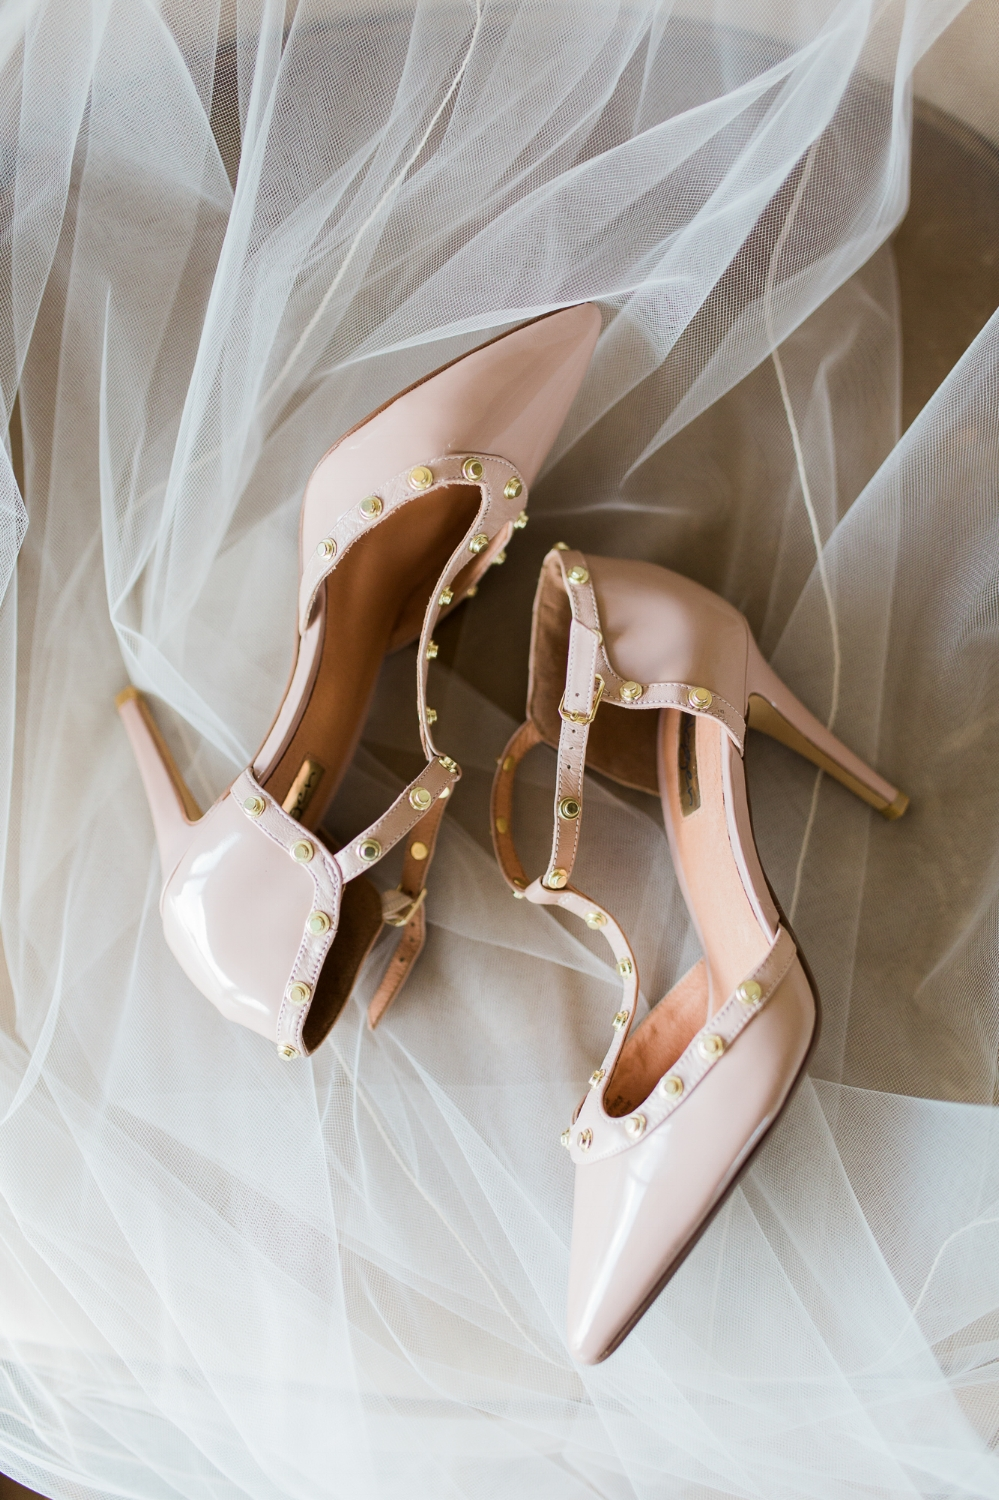 Blush colored wedding shoes lay on top of veil